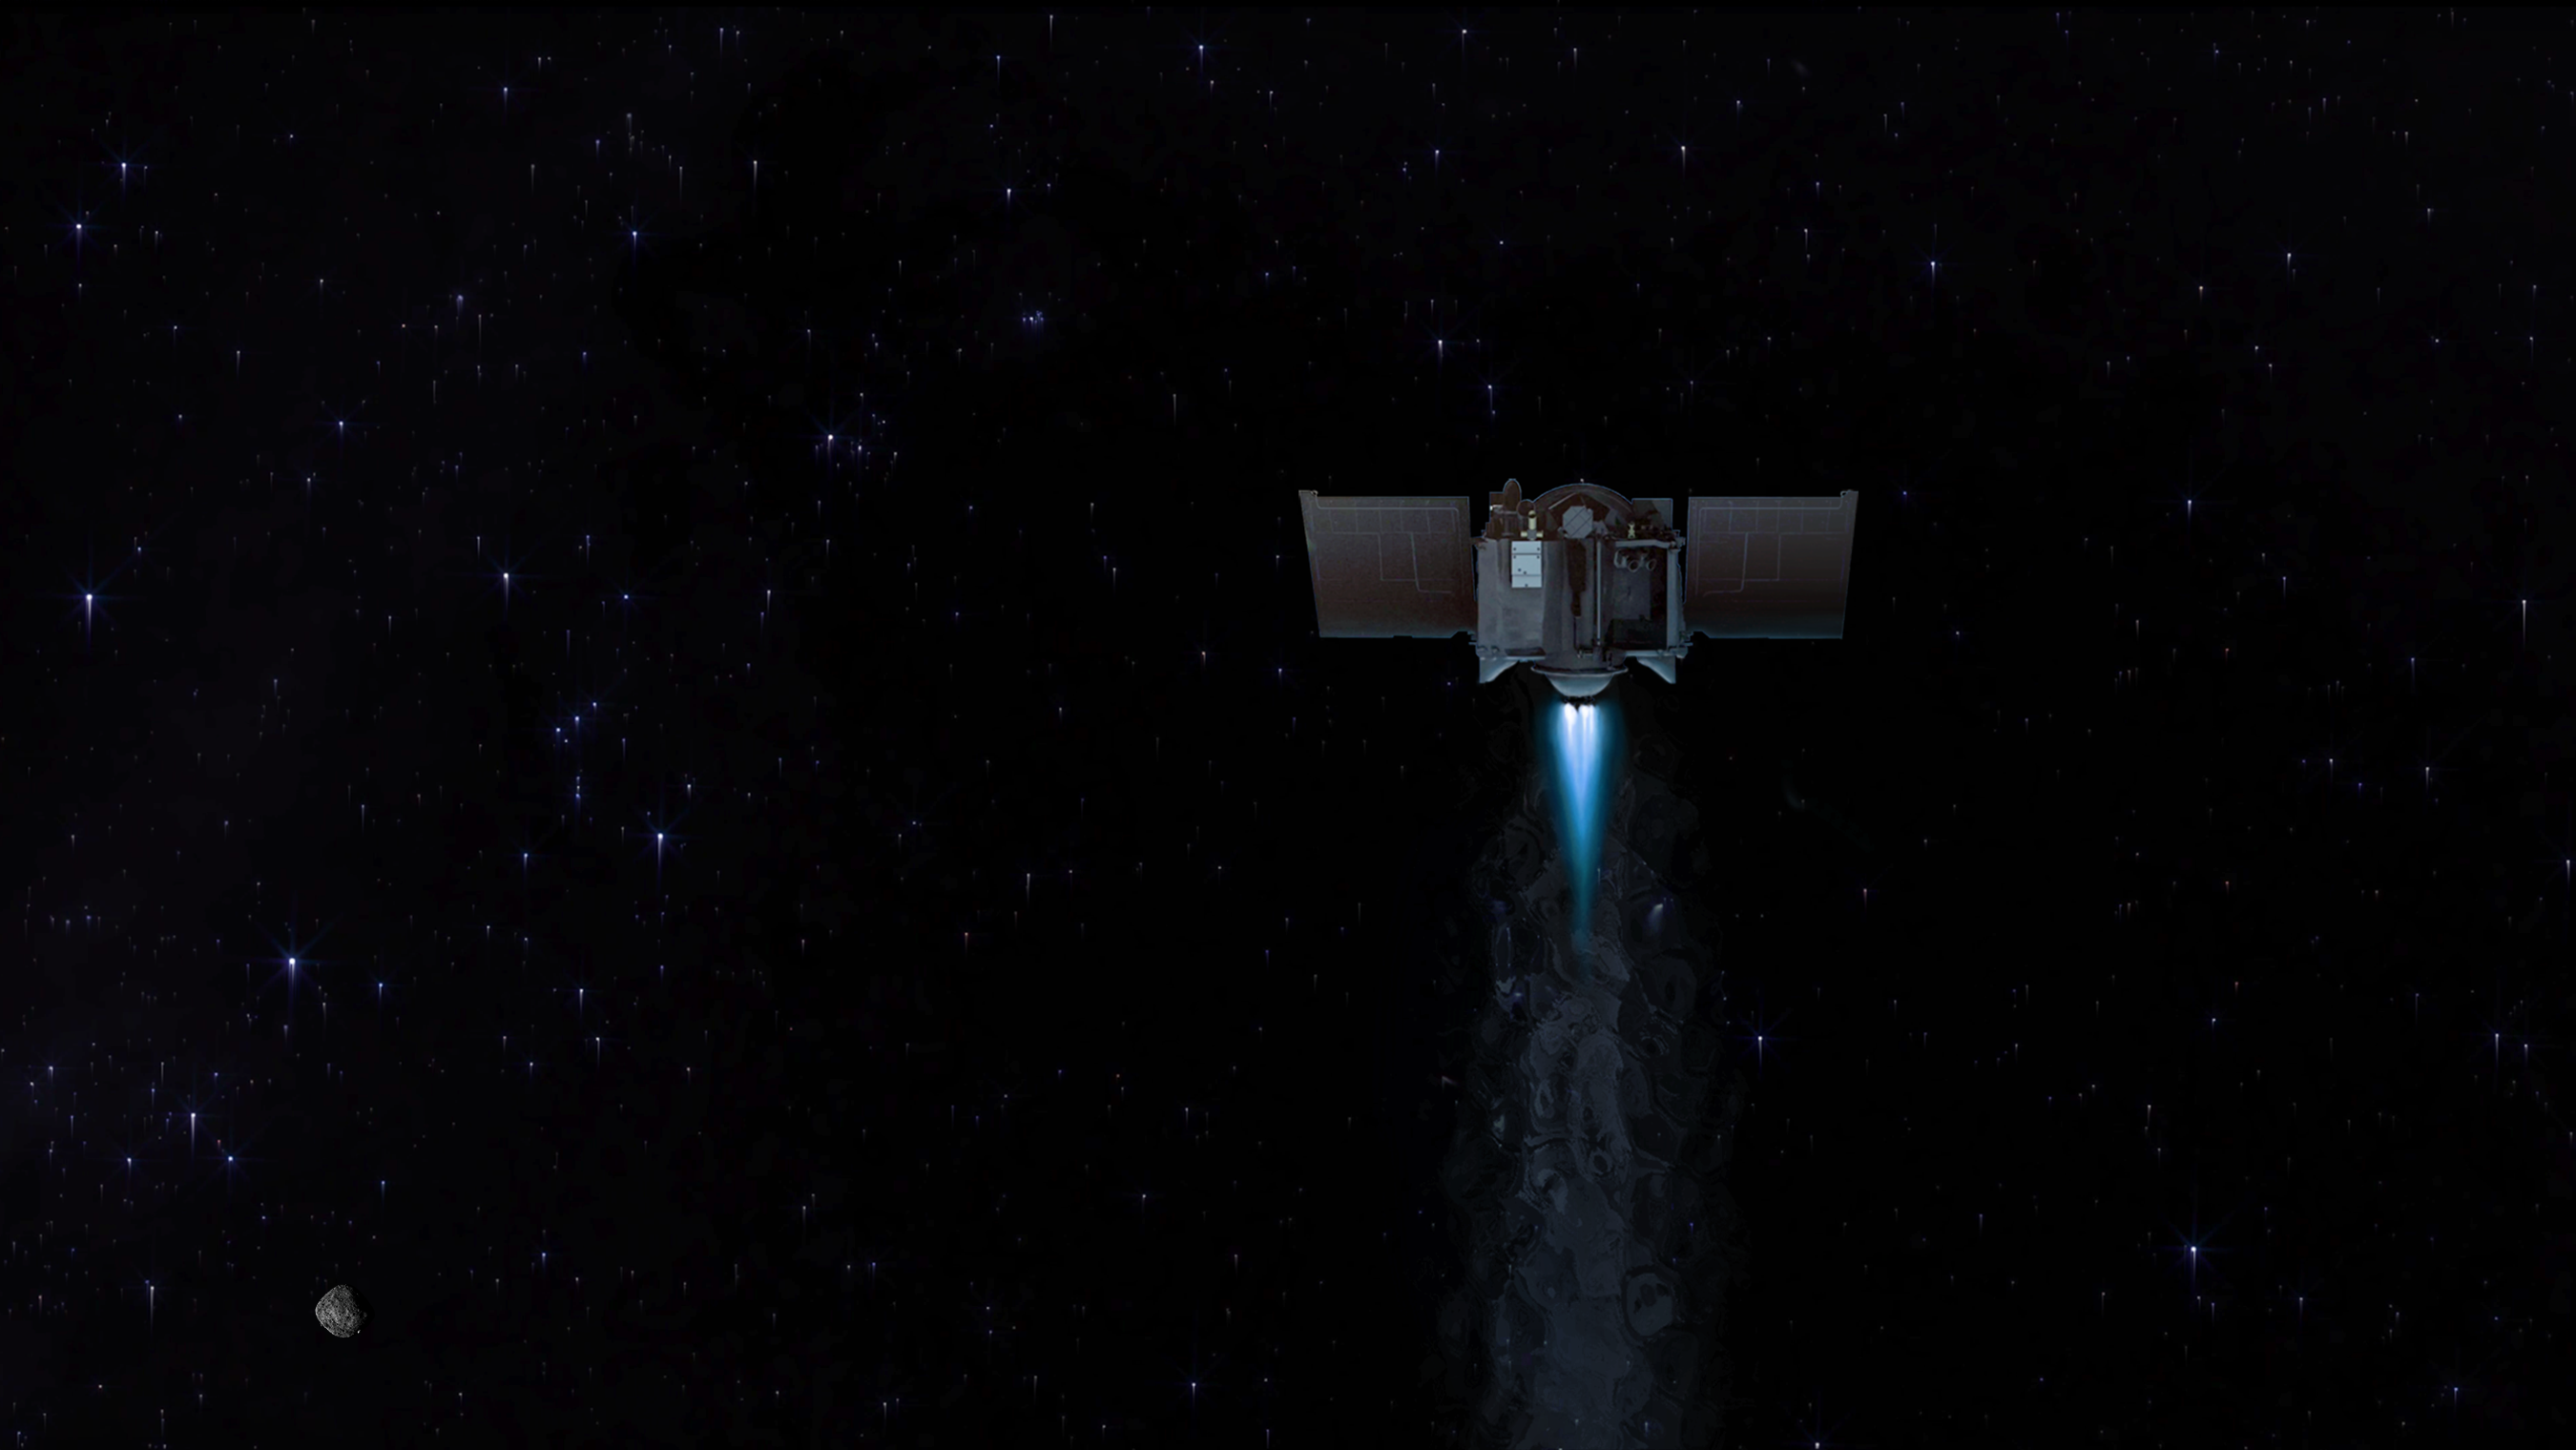 NASA Invites Public, Media to Watch Asteroid Mission Begin Return - NASA